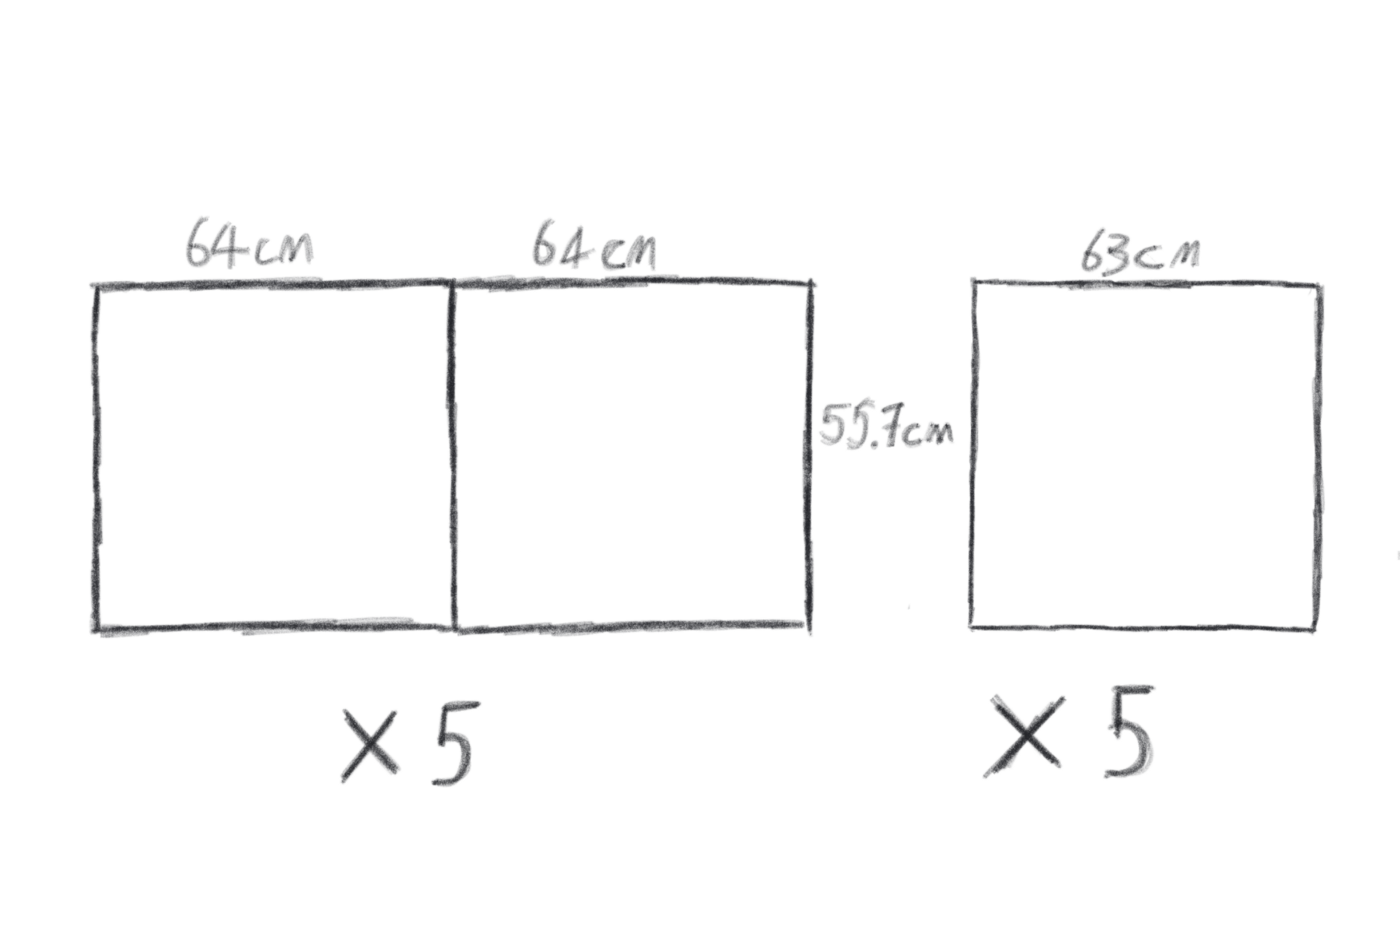 Dimensions of rectangles which raise the dome